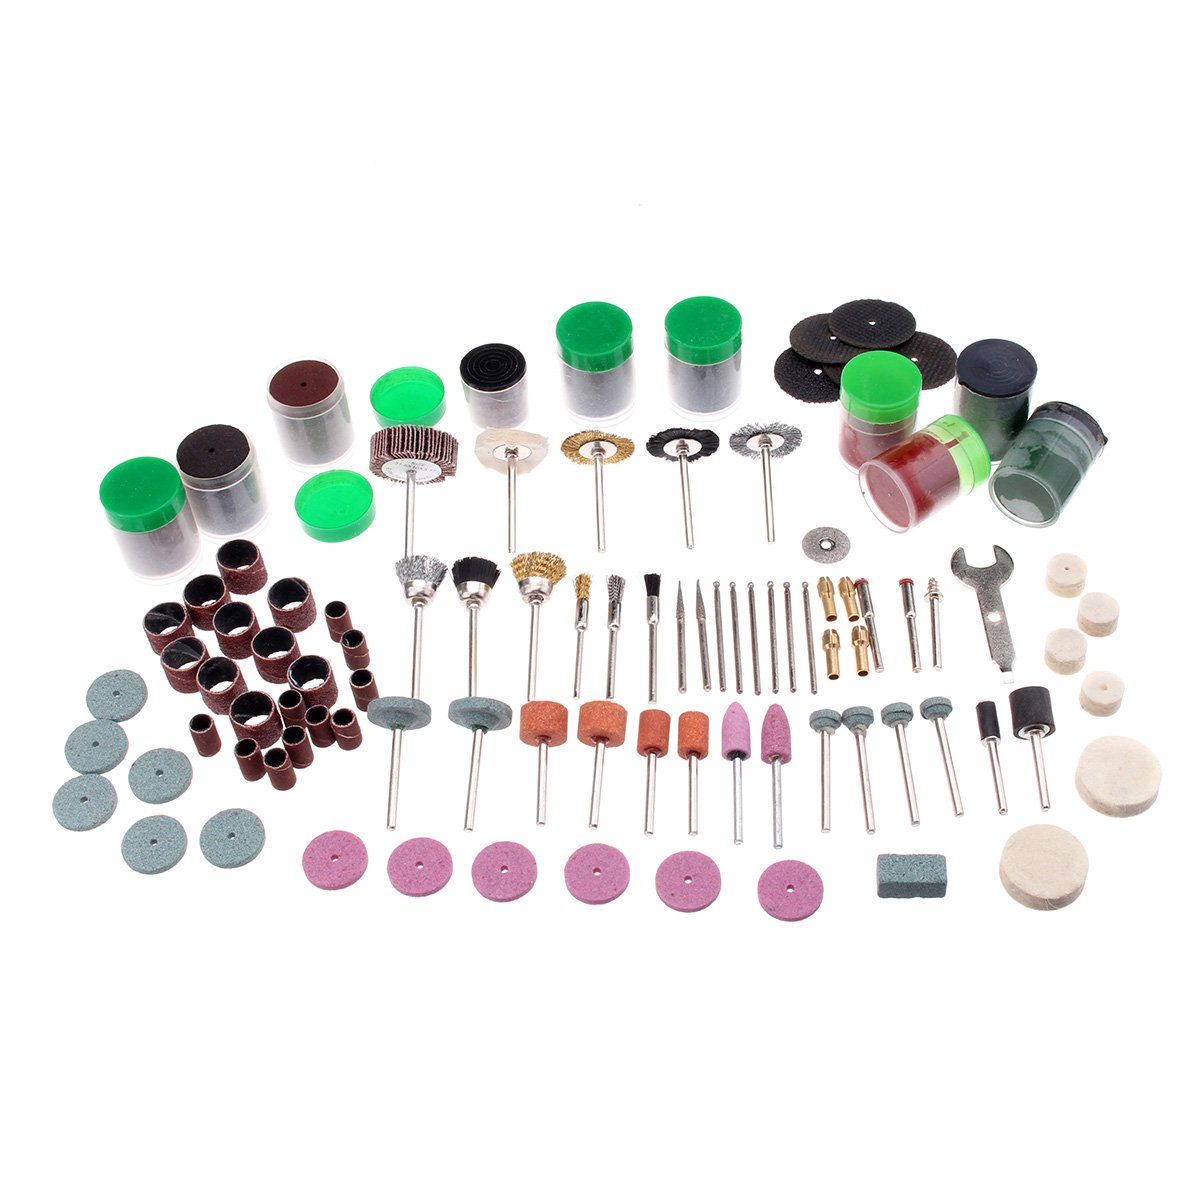 Hitommy 262pcs Multi Rotary Power Drill Kit Polishing Sanding Grinding Tool Accessories Abrasive Tool